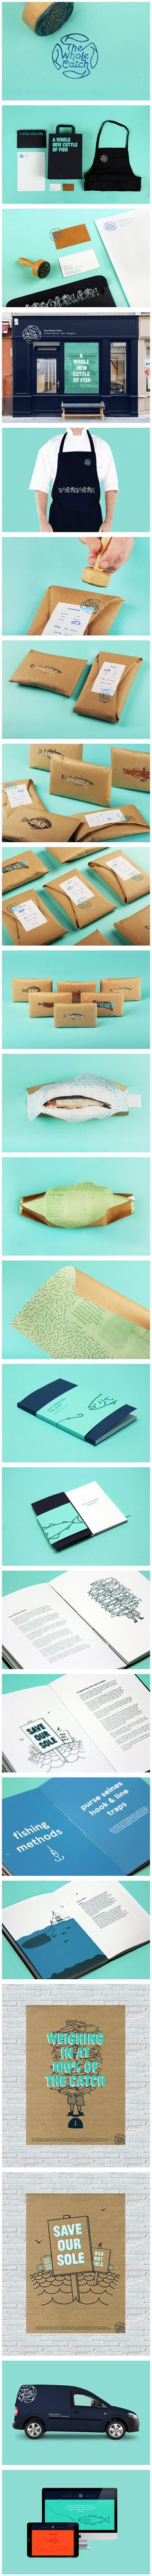 The Whole Catch by Cameron Turnbull, via Behance..